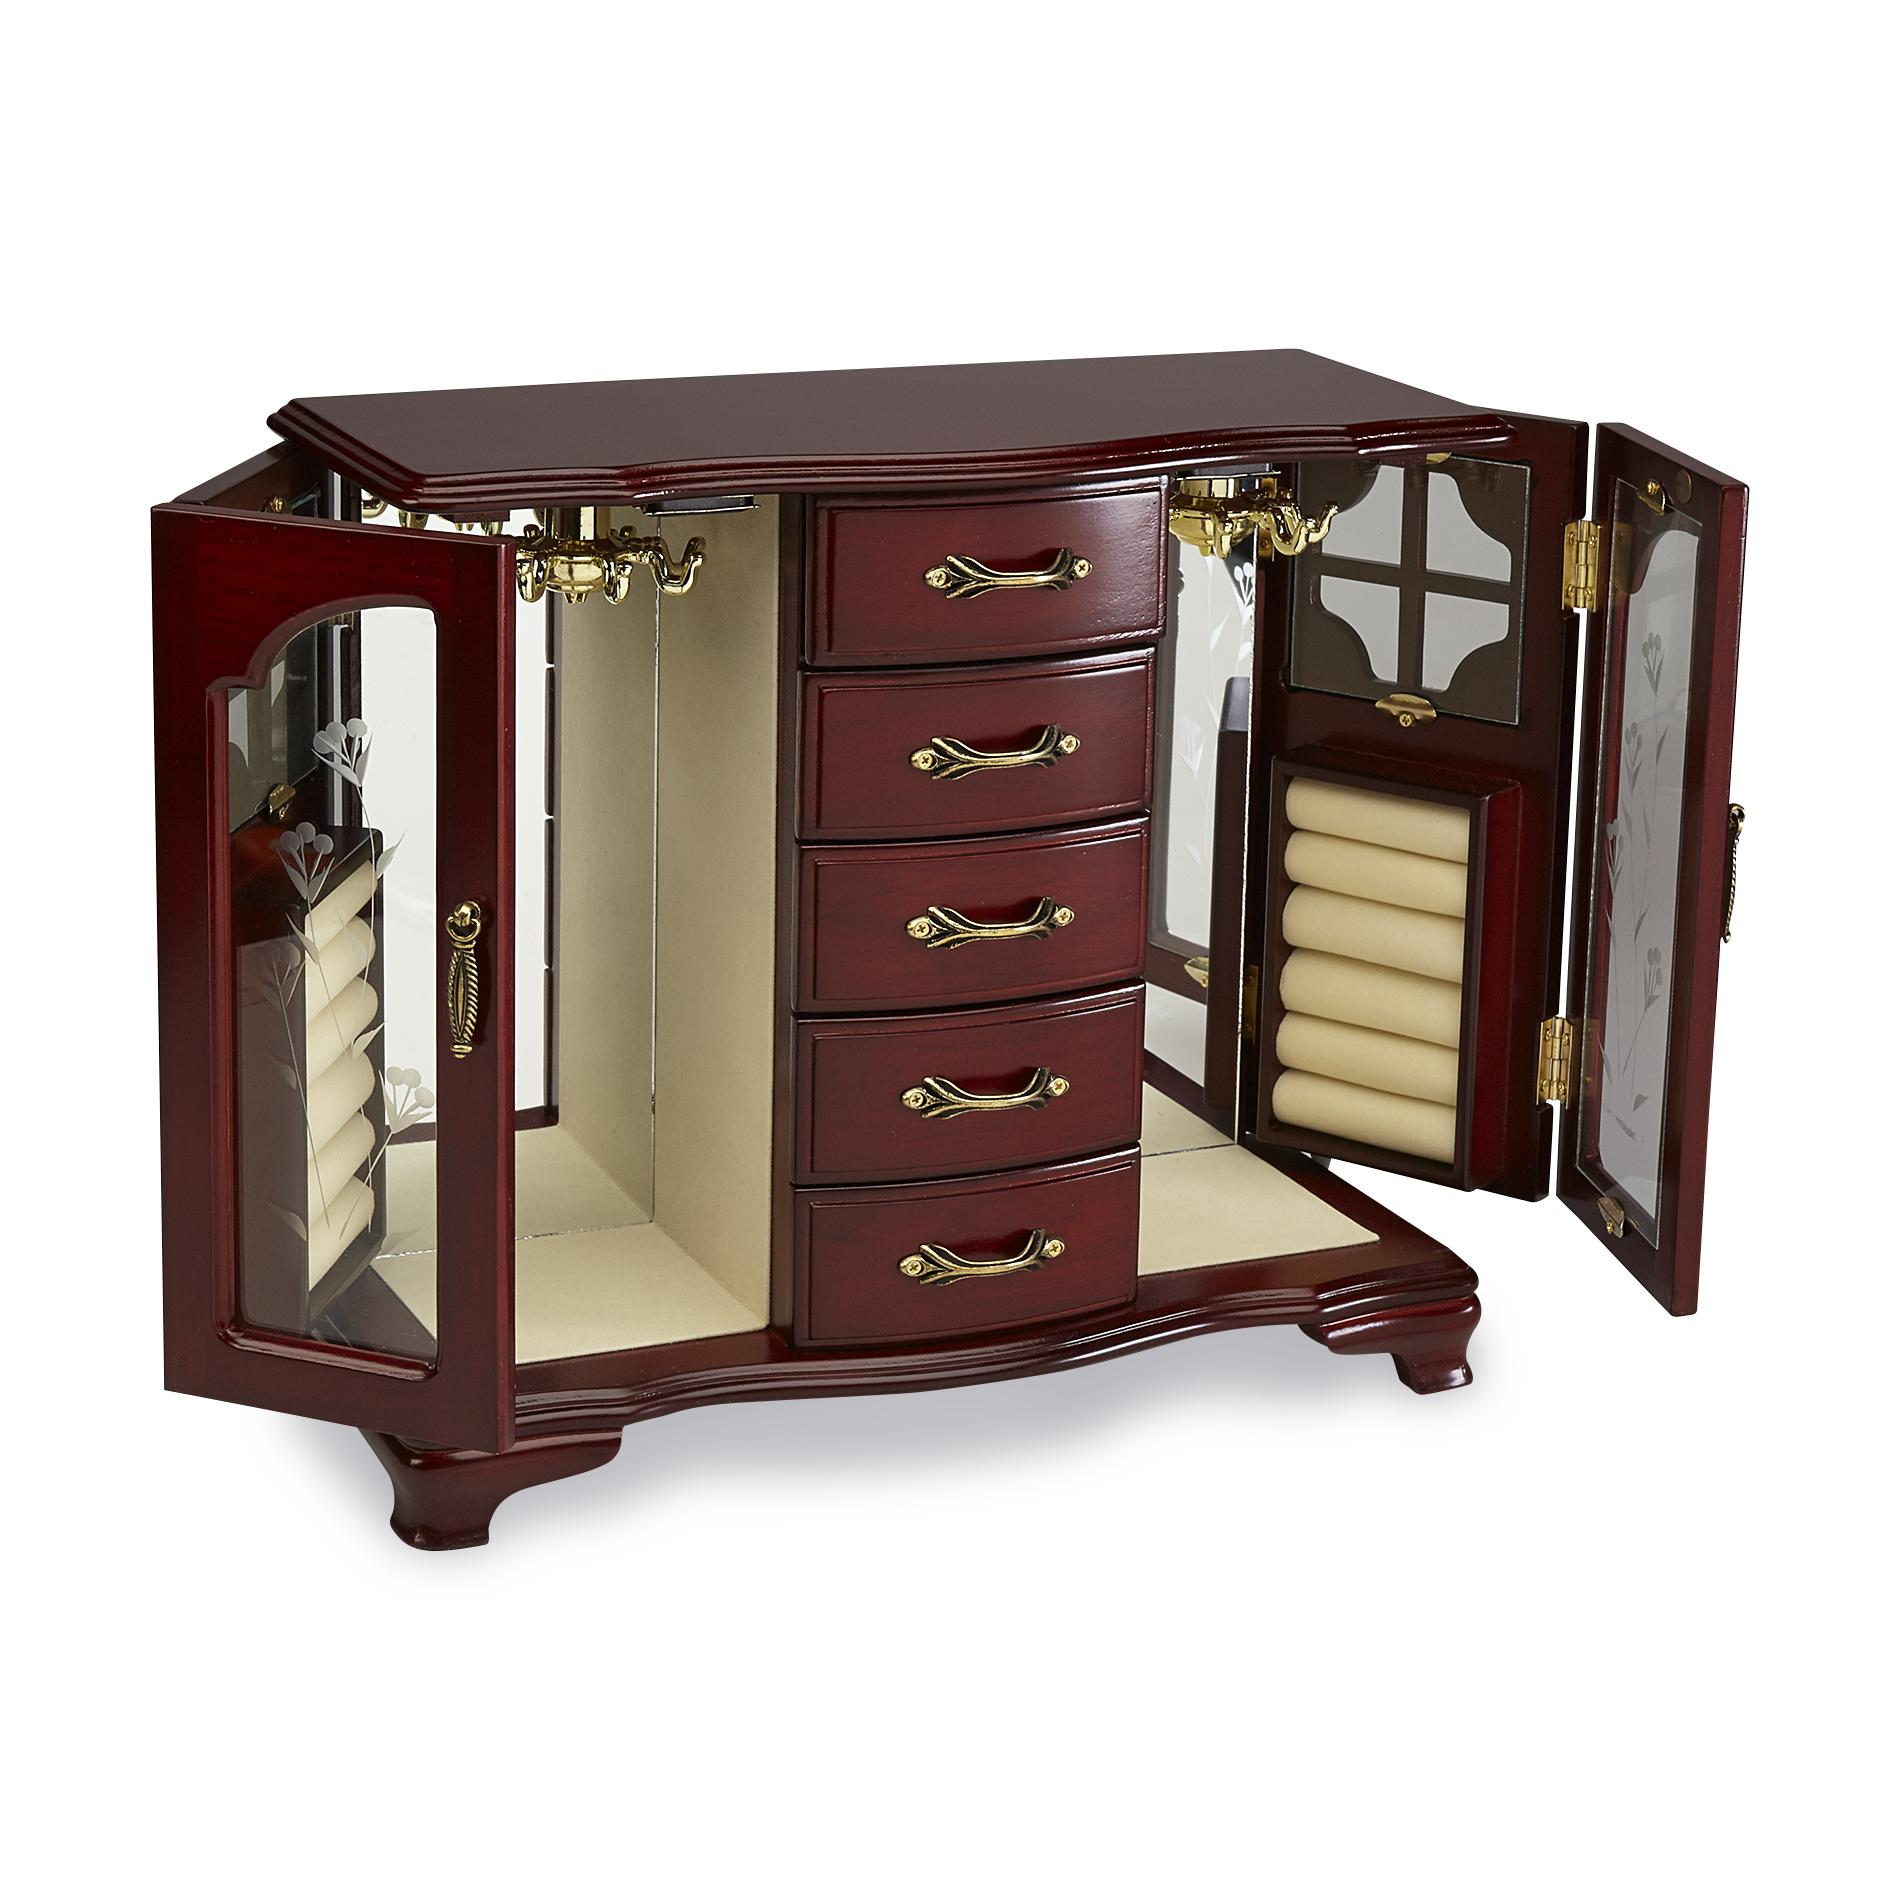 Jaclyn Smith Wooden Double-Door Upright Jewelry Chest